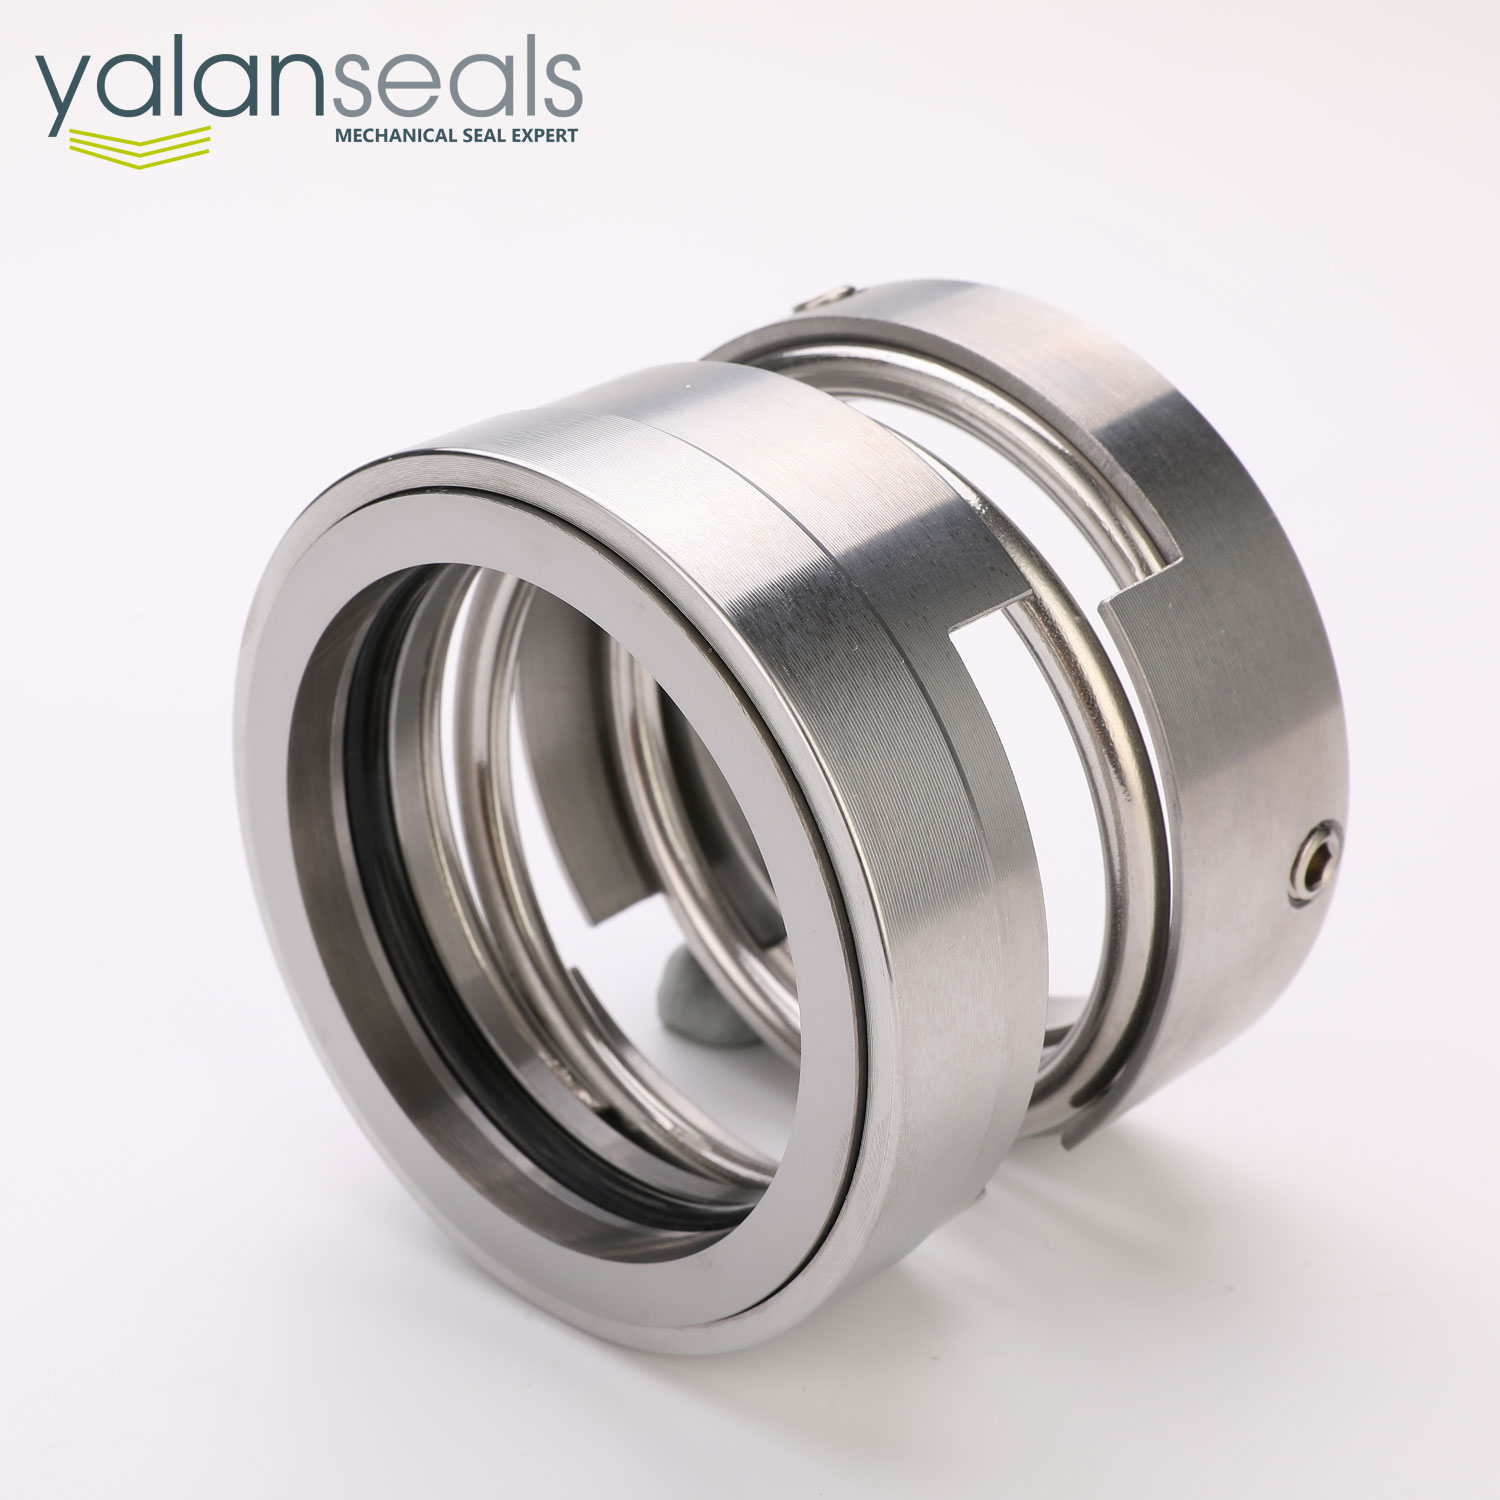 M524 Mechanical Seal